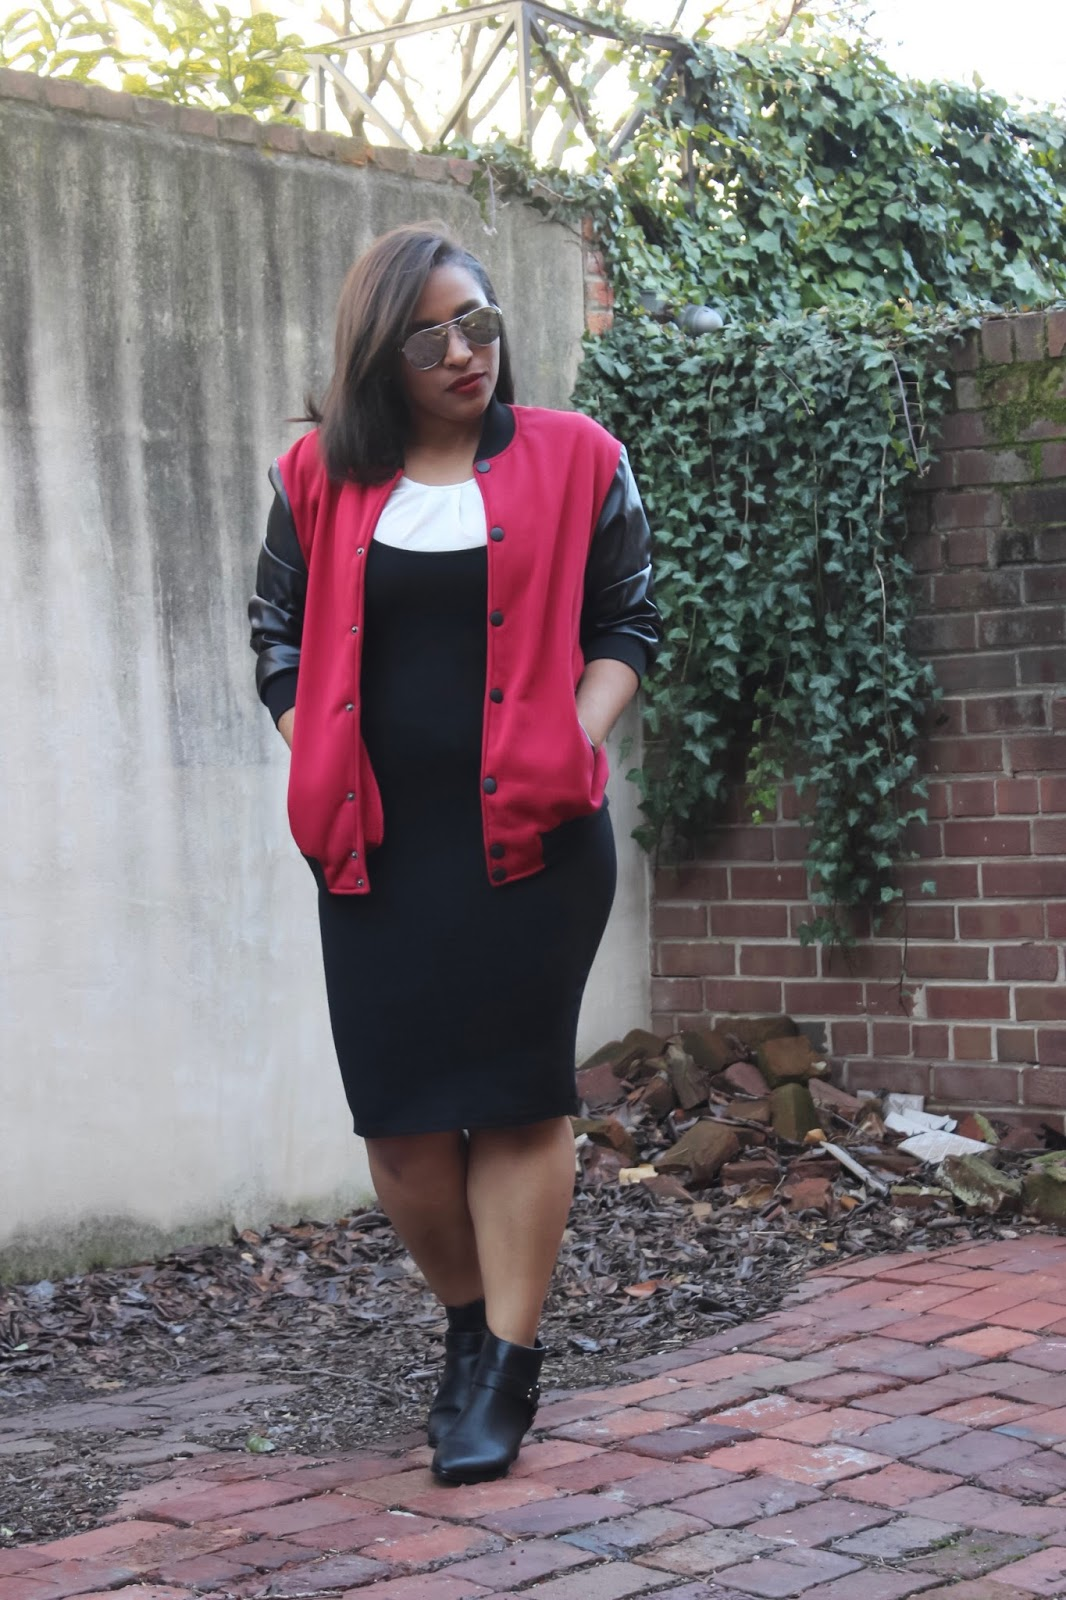 menswear, bomber jacket, mixing feminine and masculine, mixing wardrobe pieces